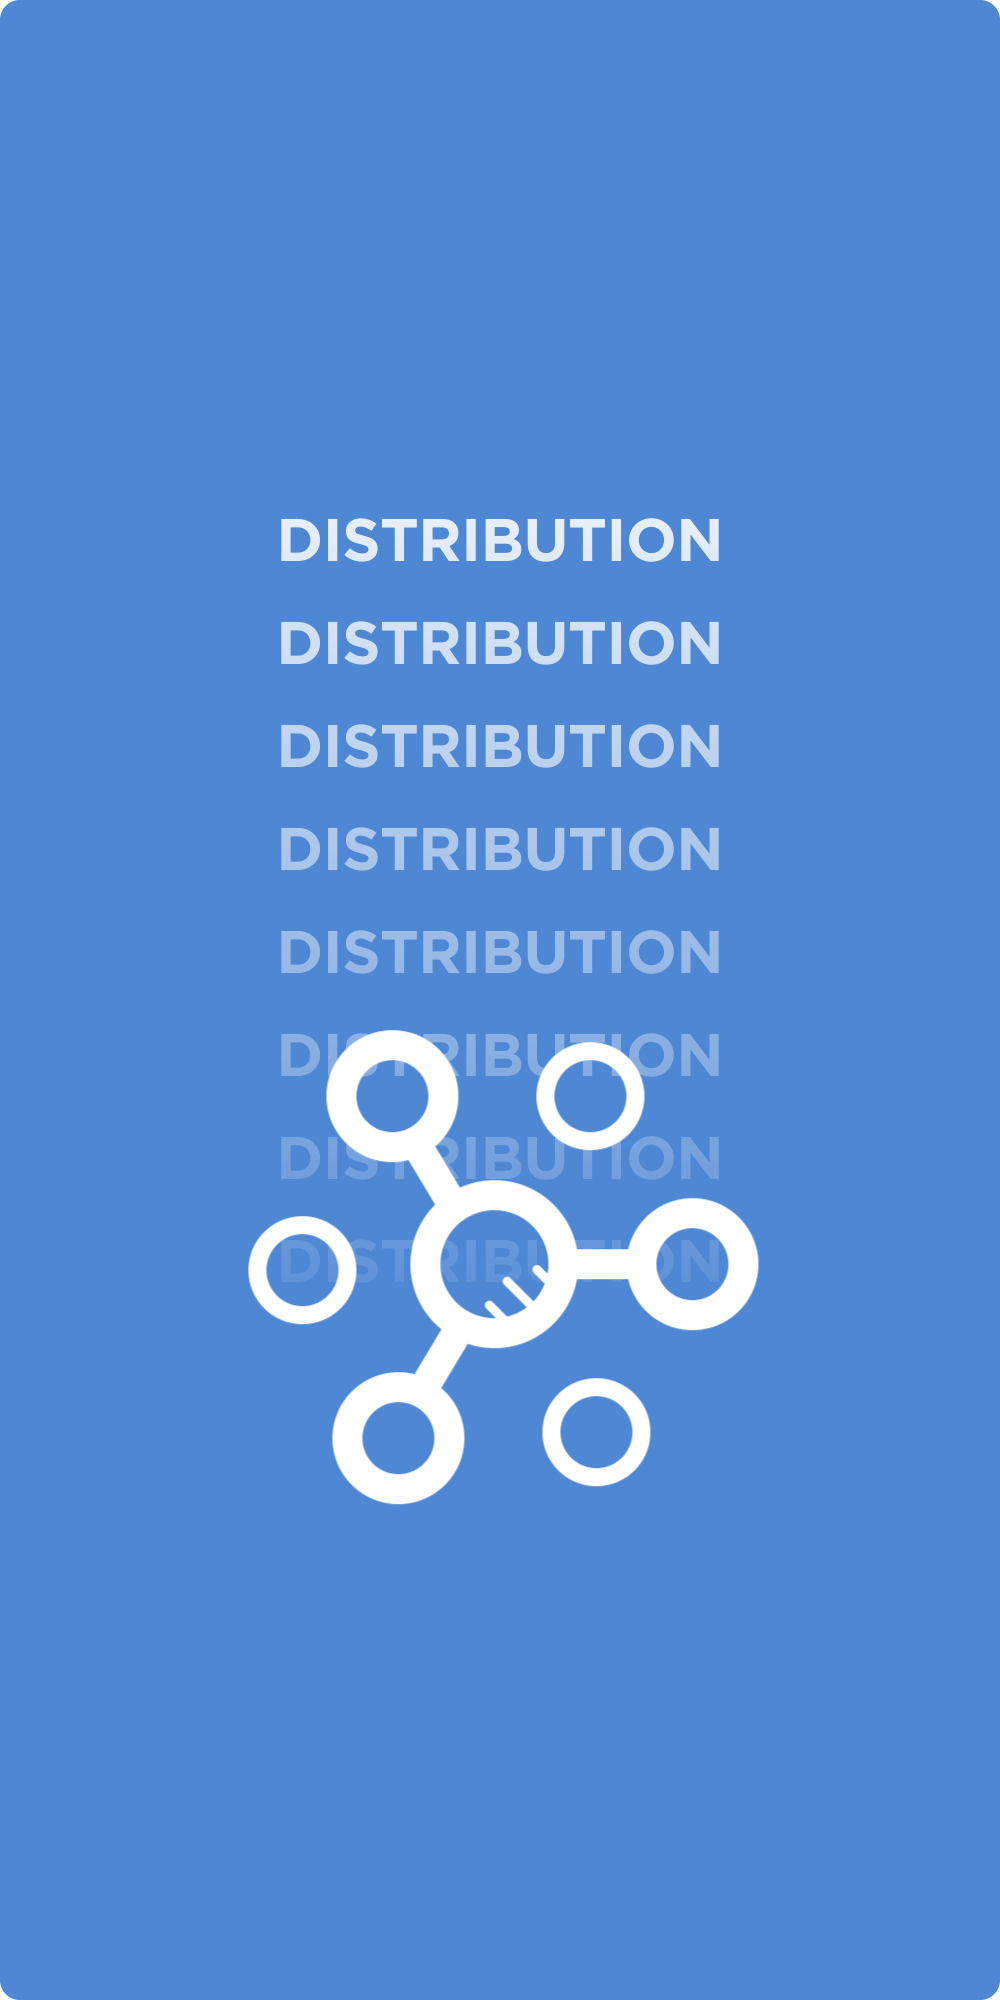 Distribution in our mind is a mix of quantity and quality. First we search for the most organic fit for the target audience then we leverage amplifiers and paid media to spark a wider audience. Take care of the core audience first and the platforms will take care of the rest.